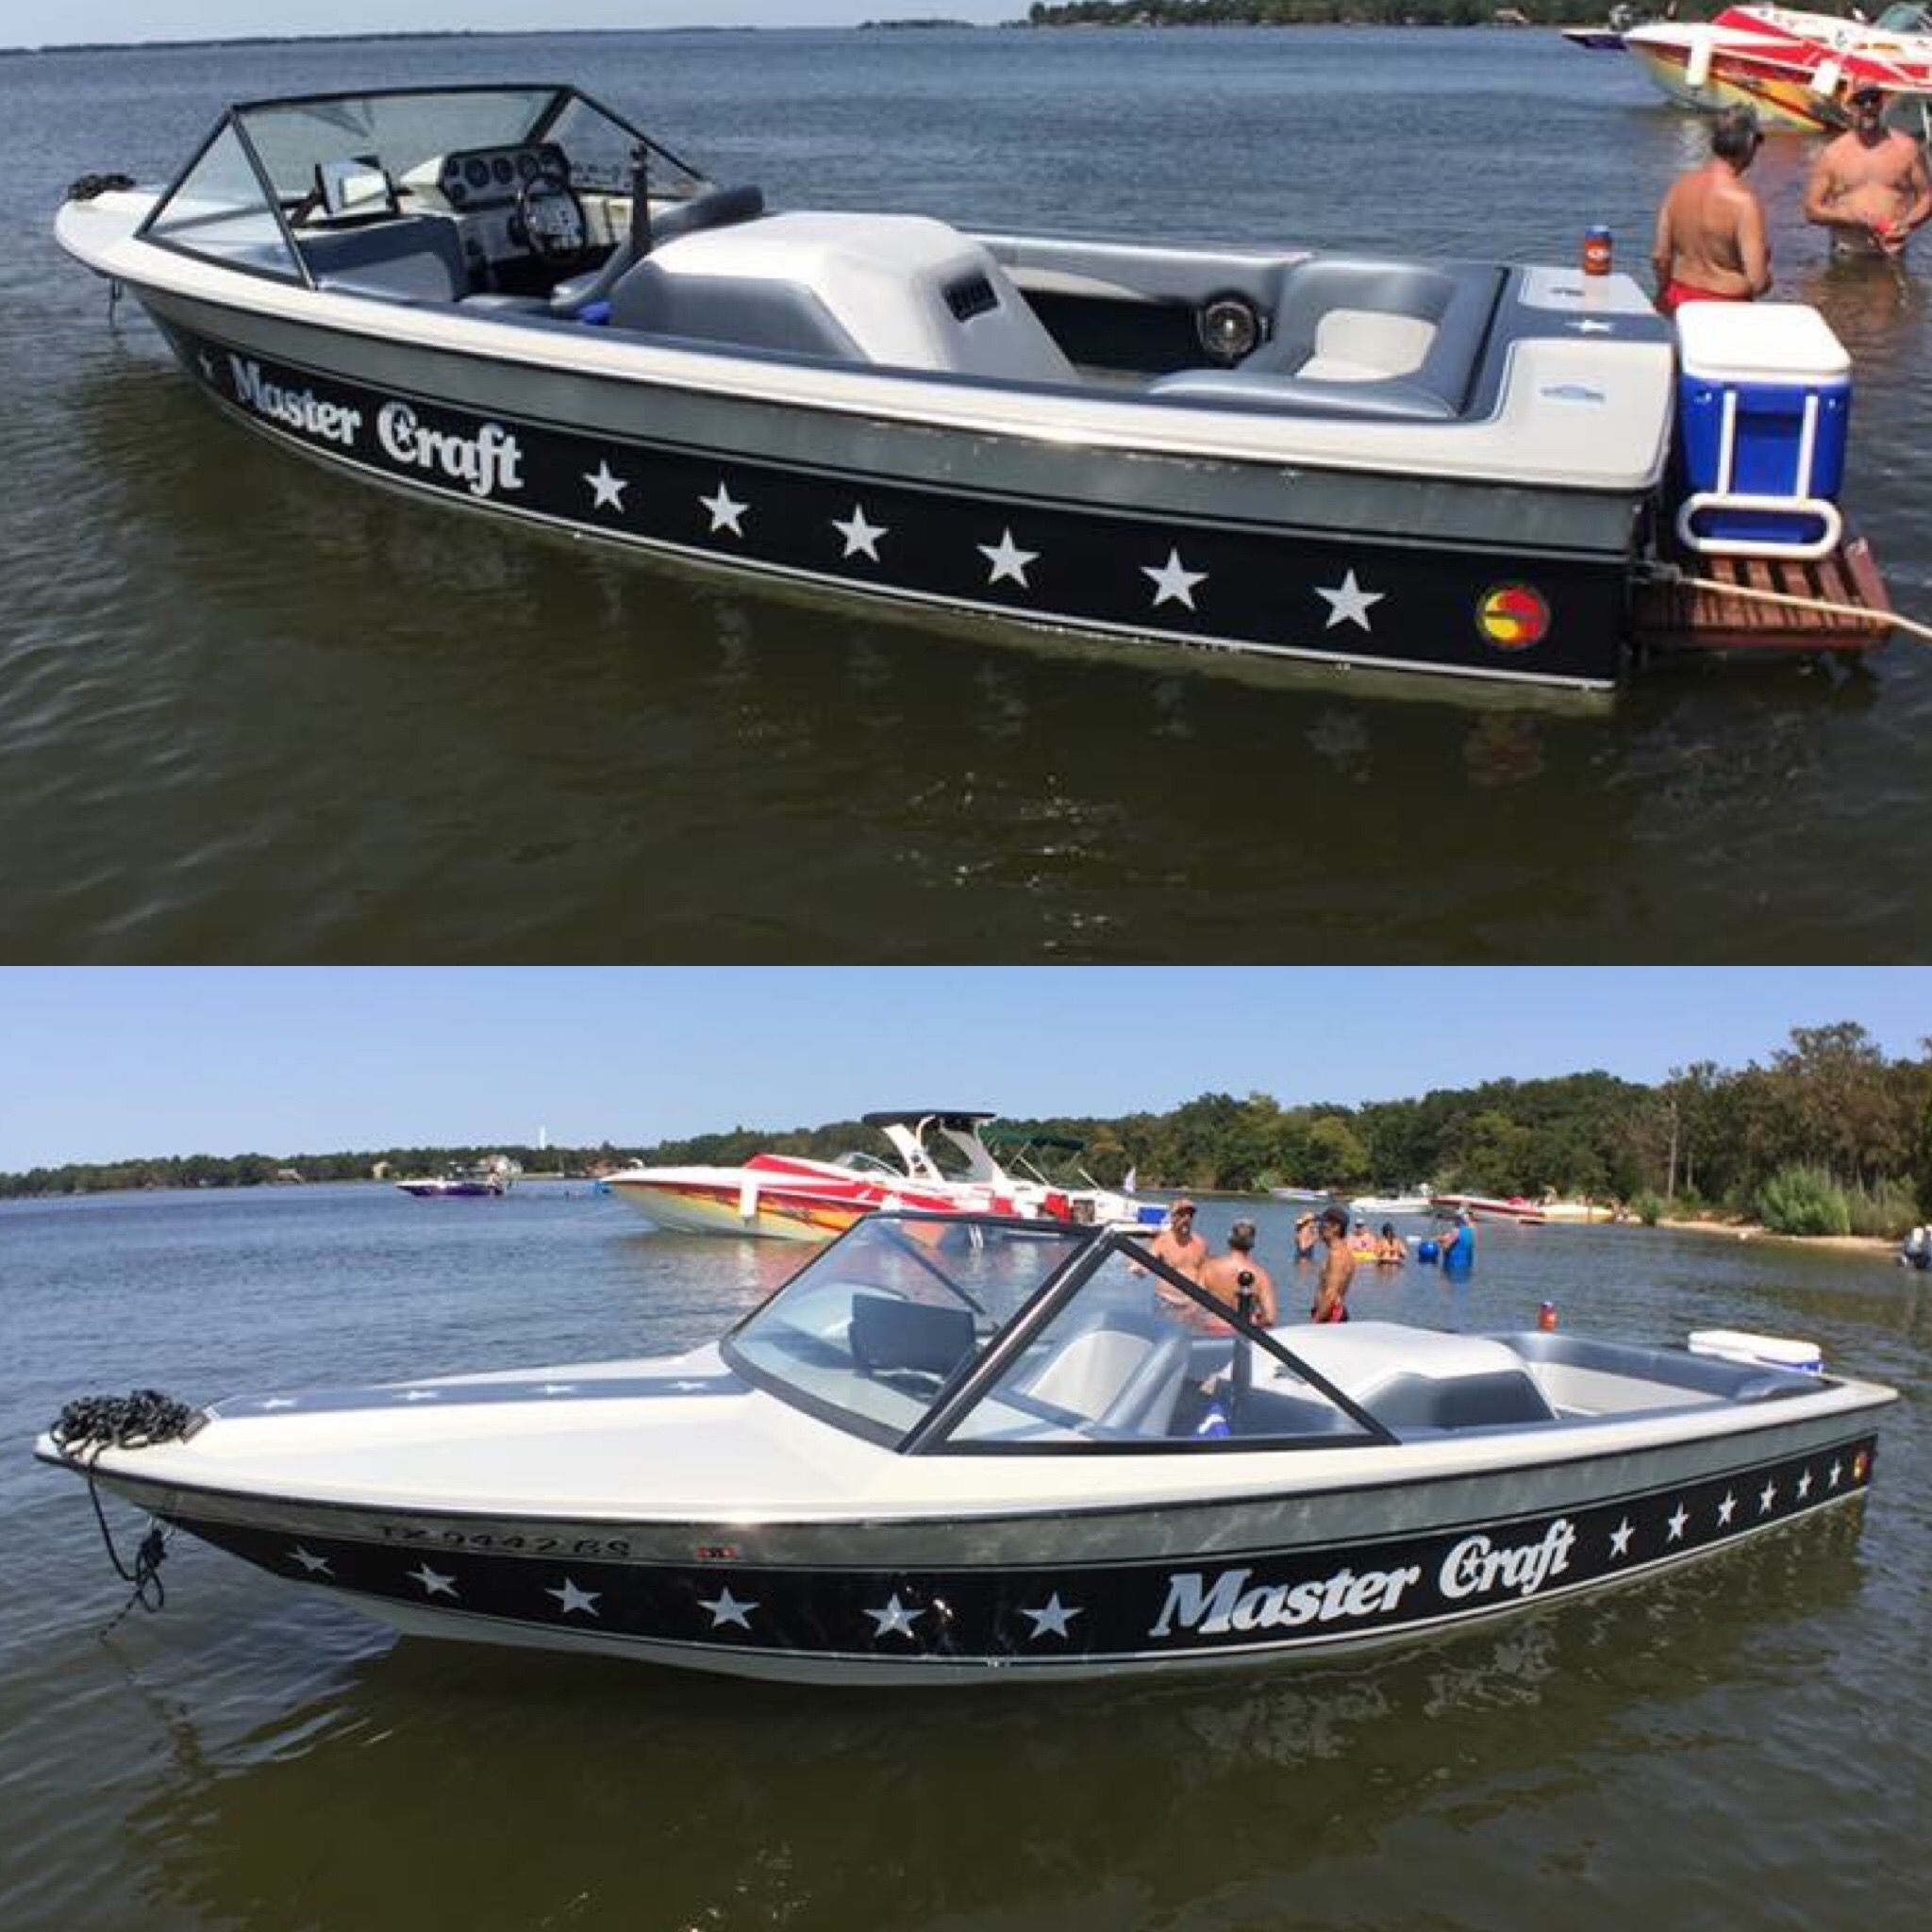 Pin By Justin Bell On Boats Mastercraft Boat Wakeboard Boats Cool Boats